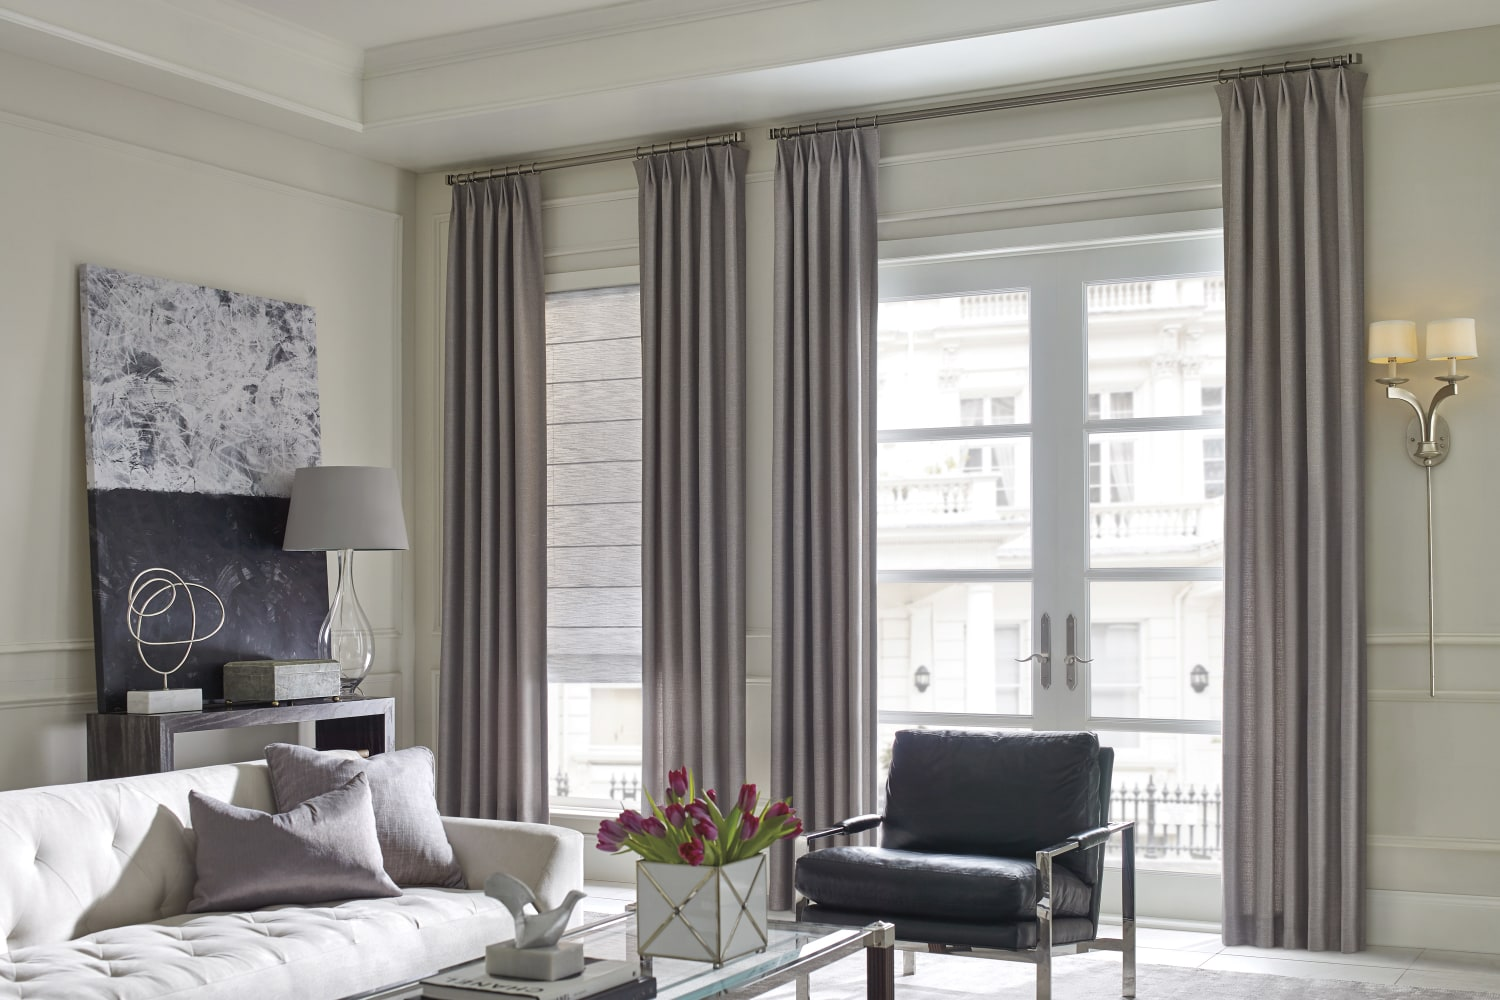 Design Studio with Vignette Roman shades in Grey Folio.